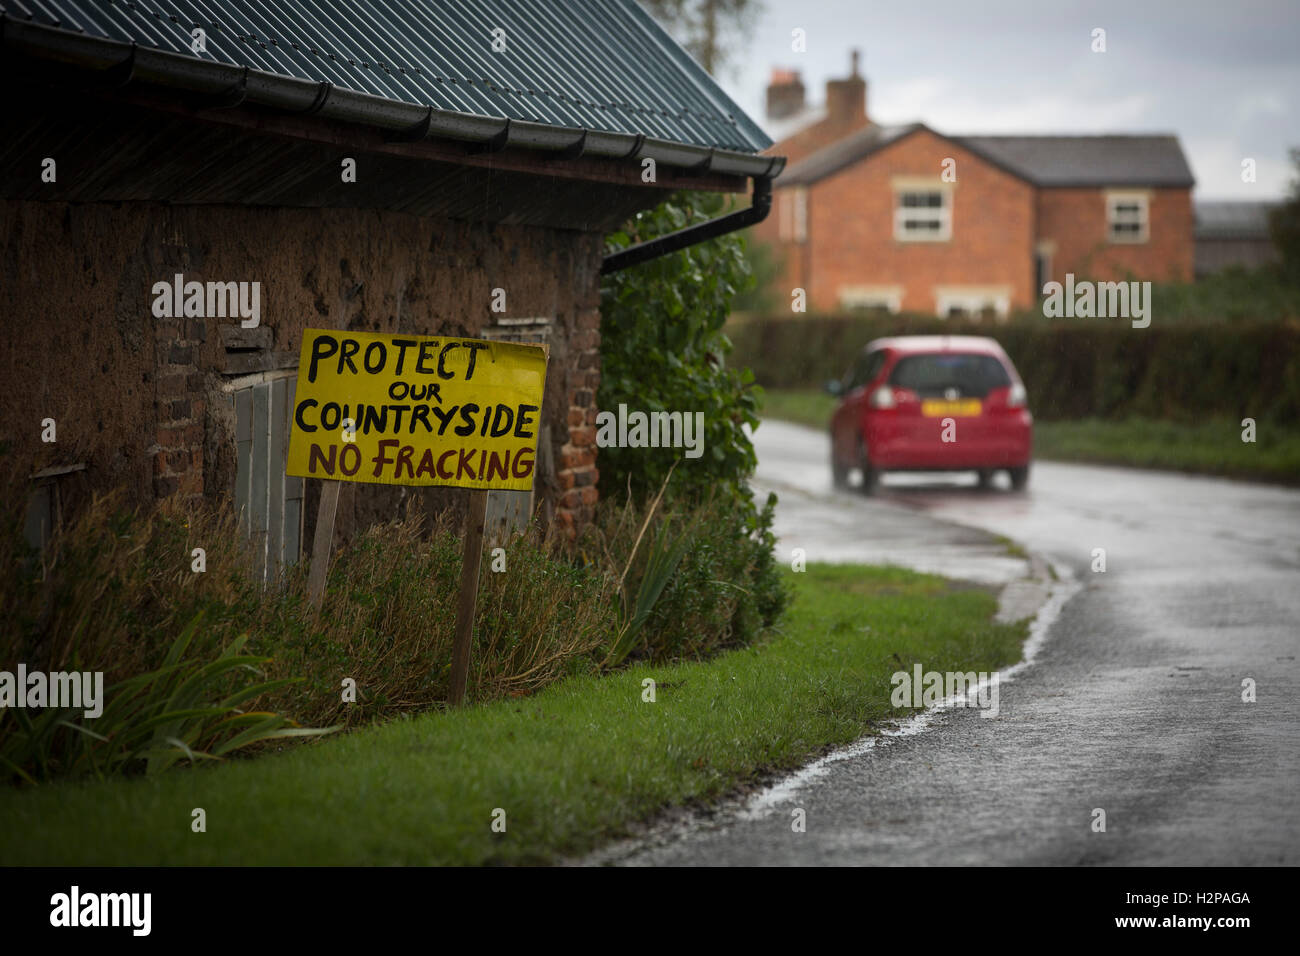 Anti-fracking signs in the village of Woodsfold, close to the proposed site at Roseacre Wood, Lancashire where fracking - Stock Image